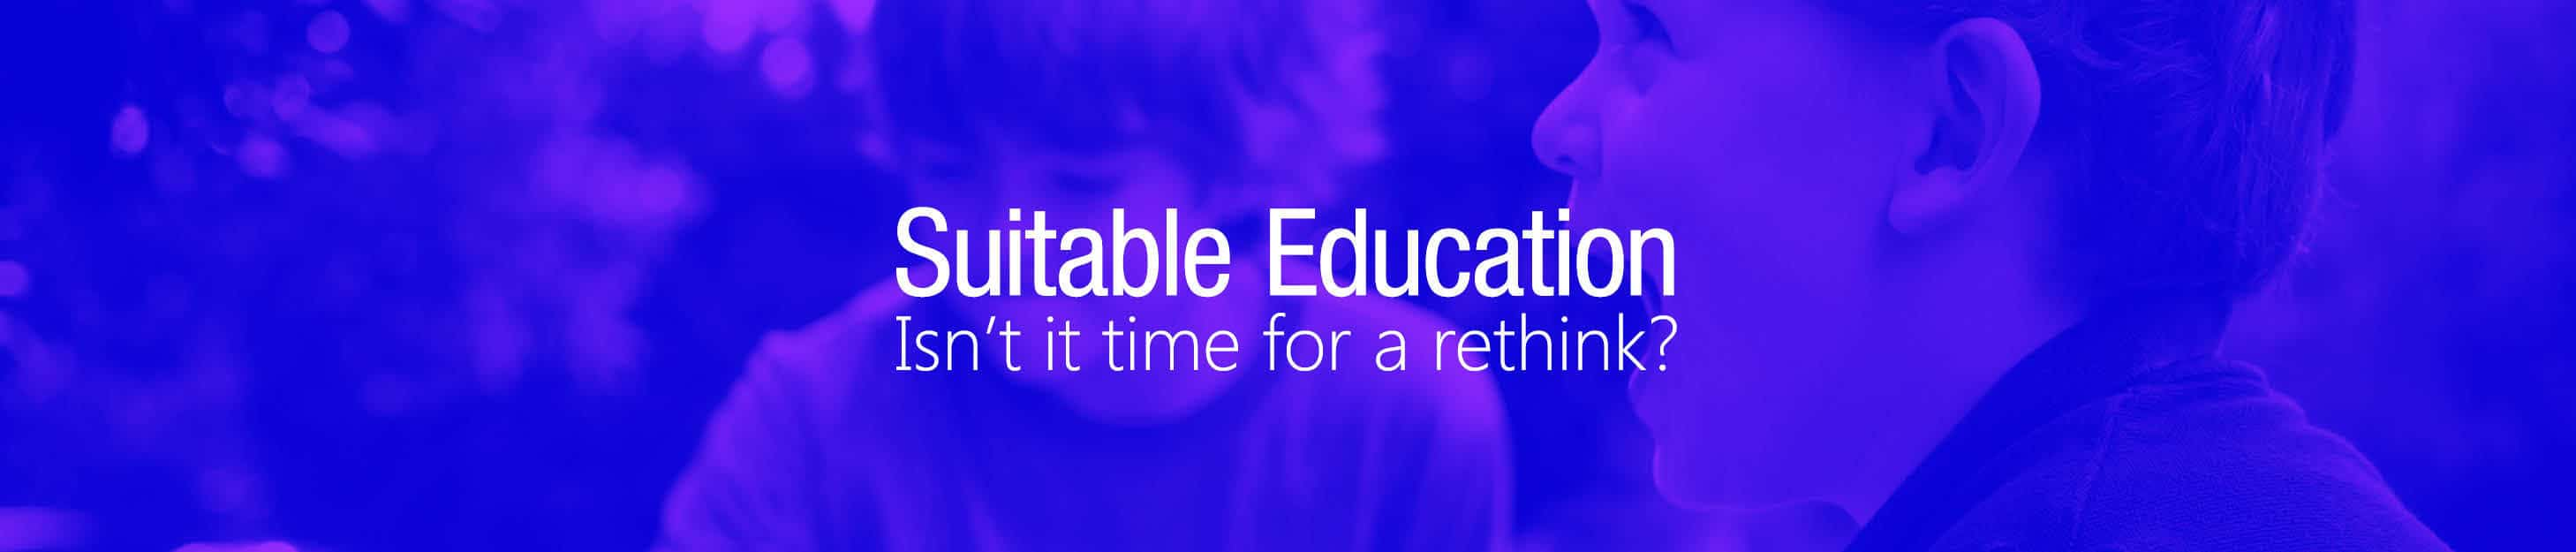 What is a Suitable Education?